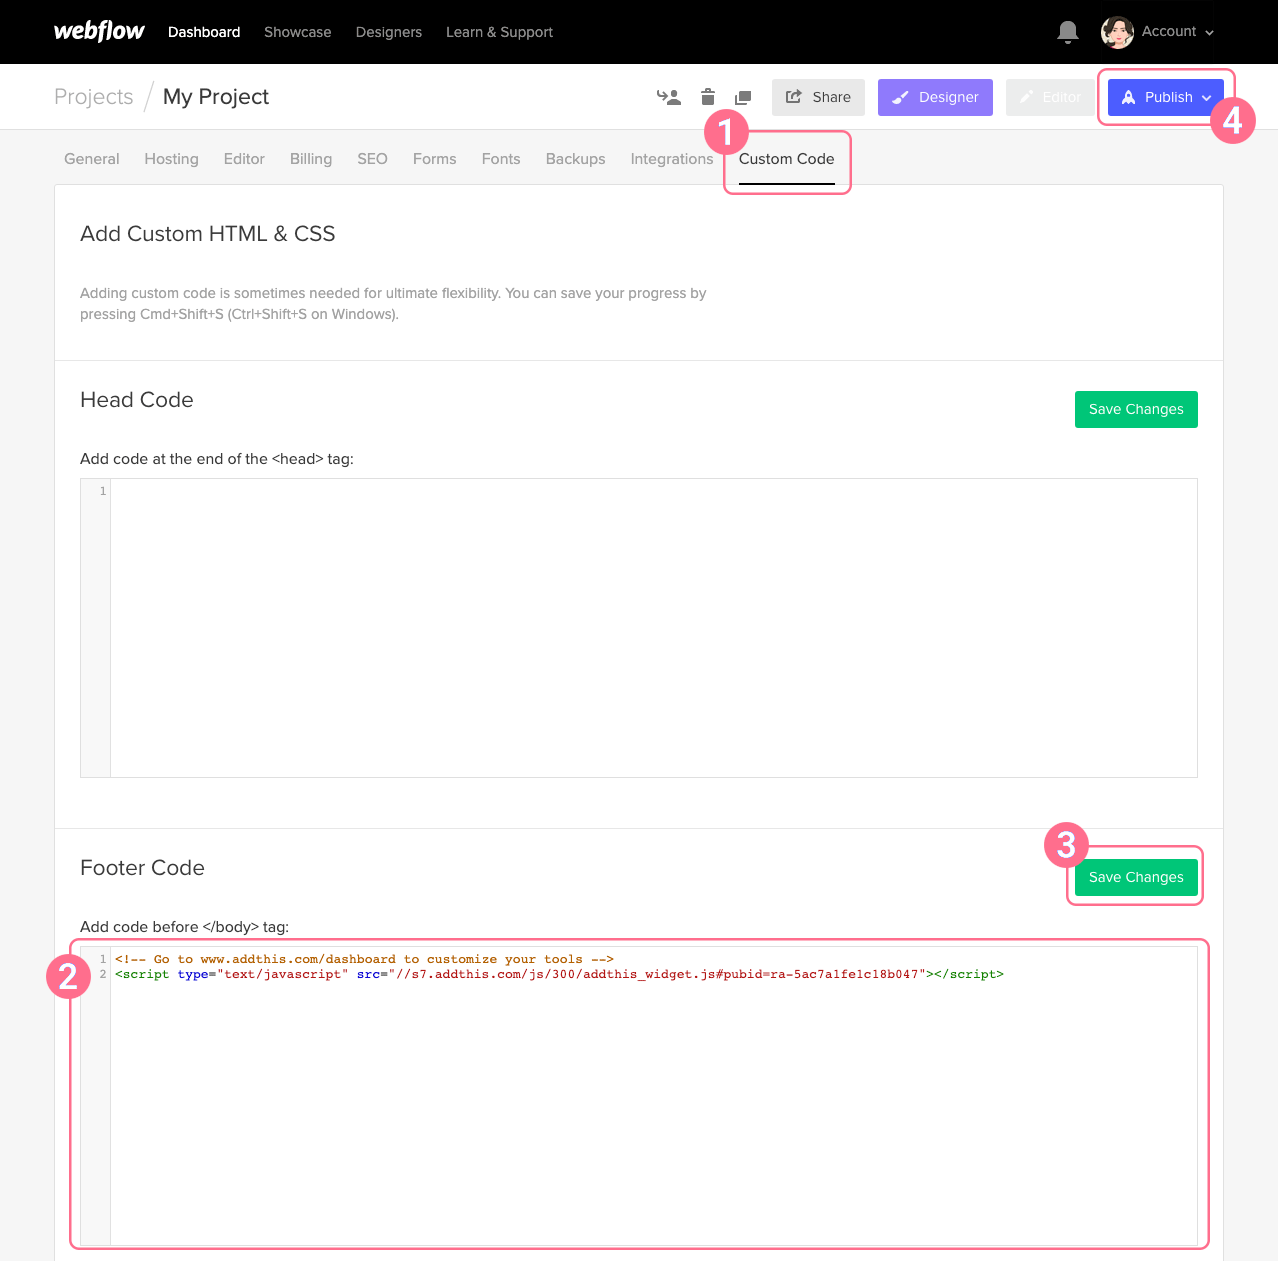 Image 2: Embed the code in your project settings